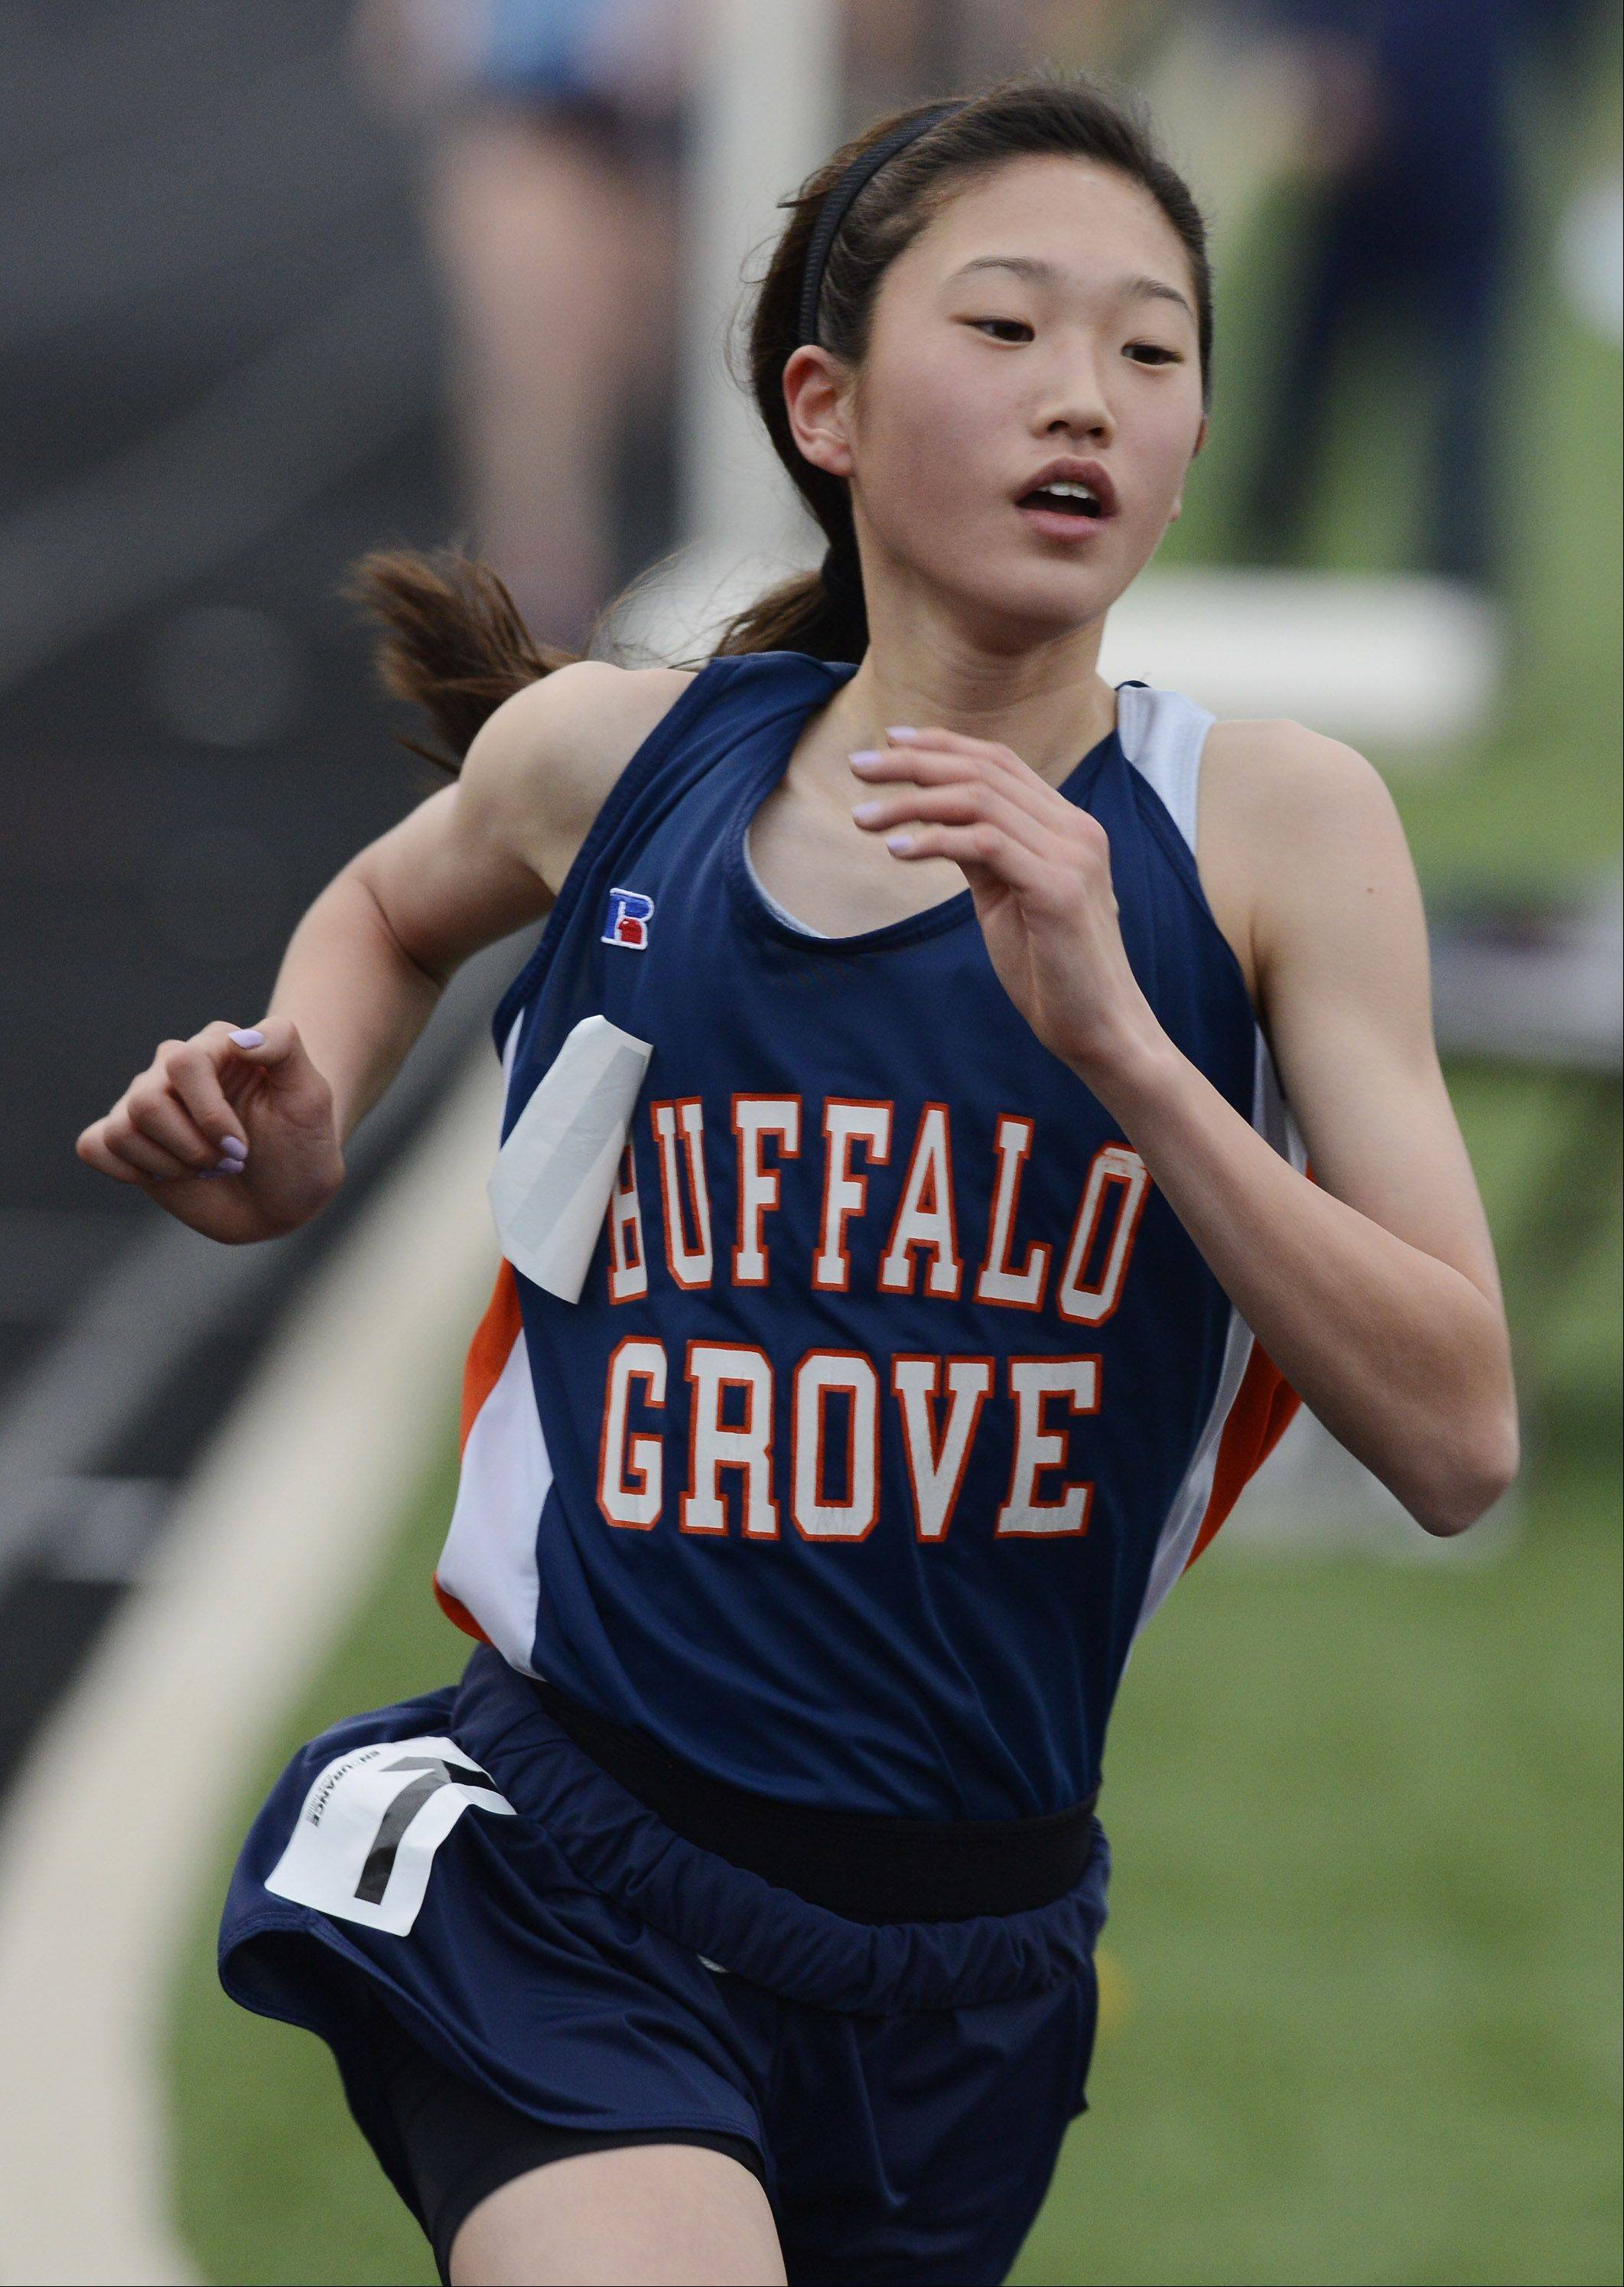 Buffalo Grove's Kaitlyn Ko heads into the final lap on her way to winning the 3,200-meter run during the Mid-Suburban League girls track meet at Schaumburg on Friday.